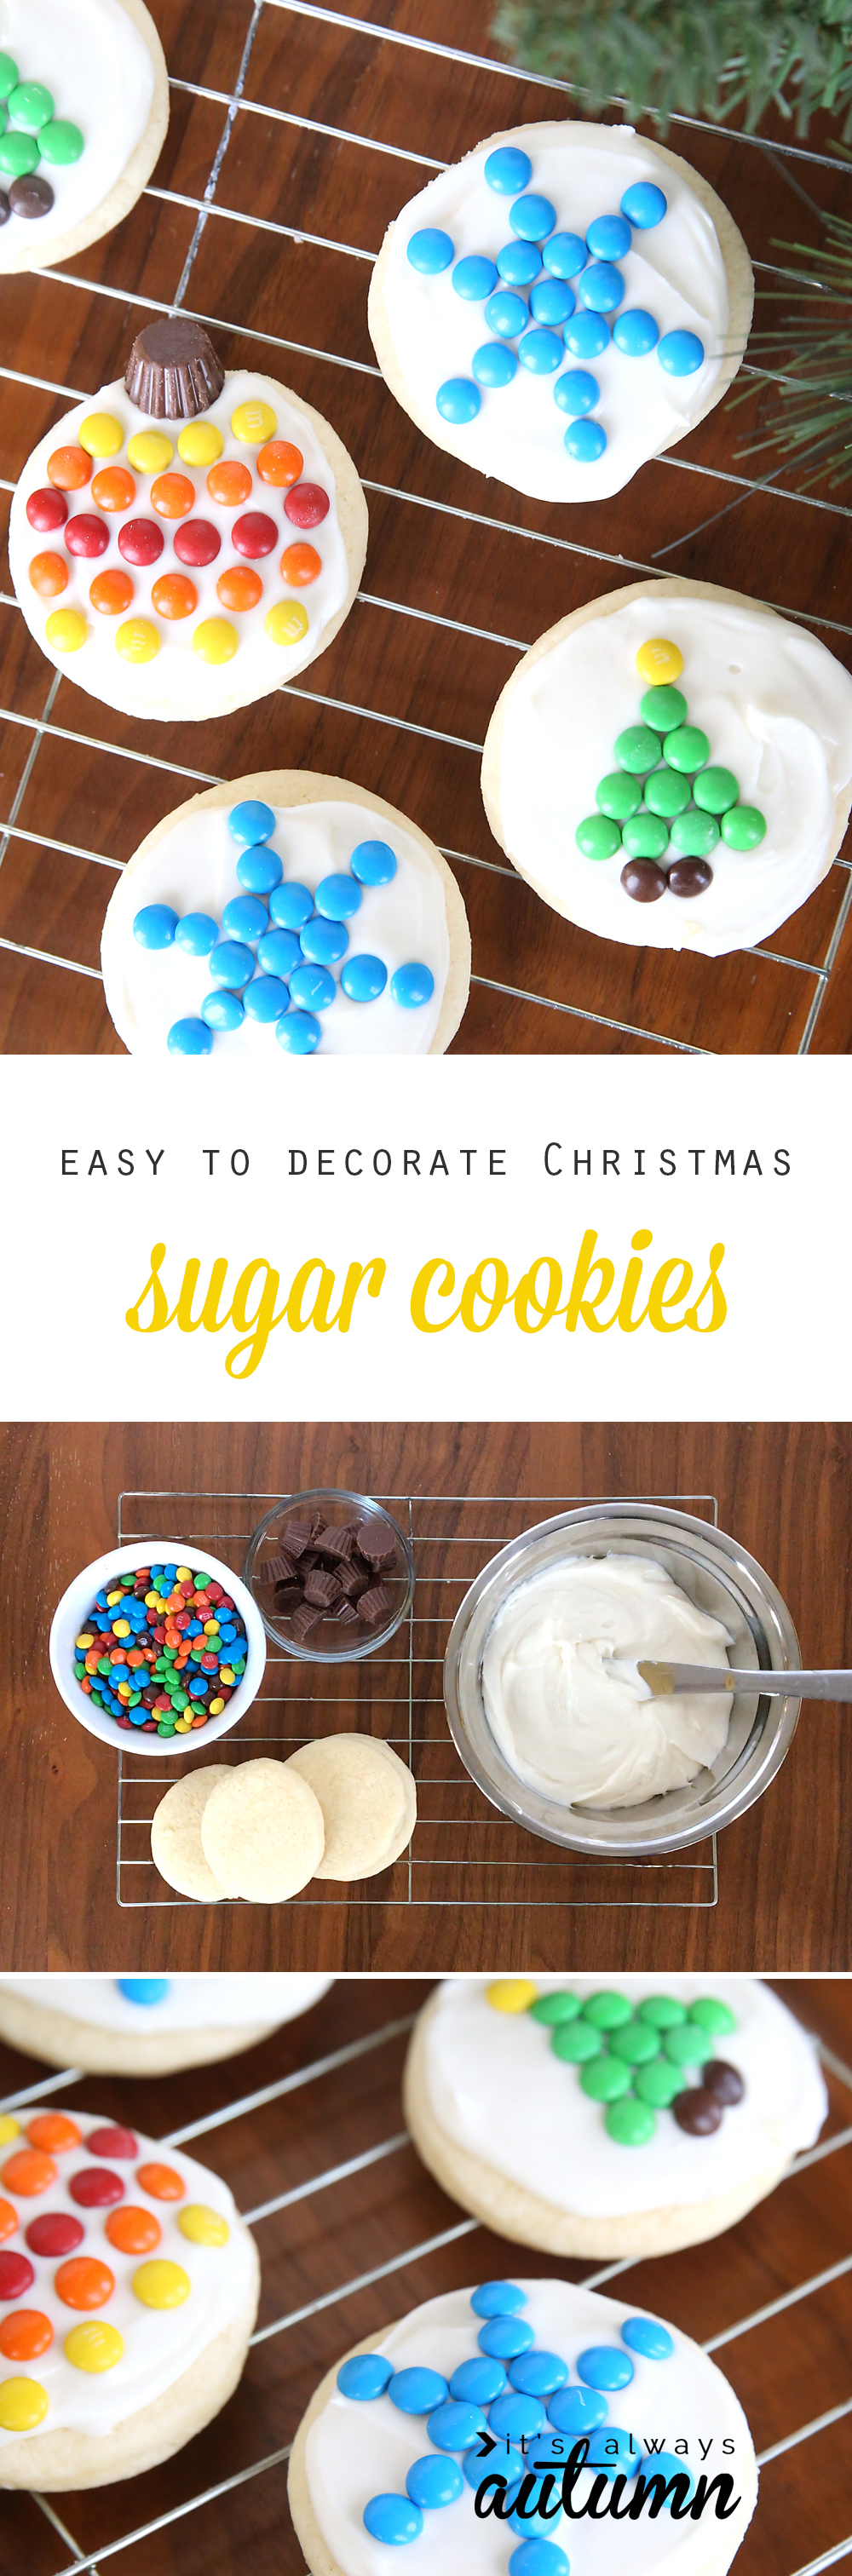 These are adorable! Mini M&Ms make it super easy to decorate Christmas sugar cookies. Fun kid activity and great sugar cookie and cream cheese frosting recipe.